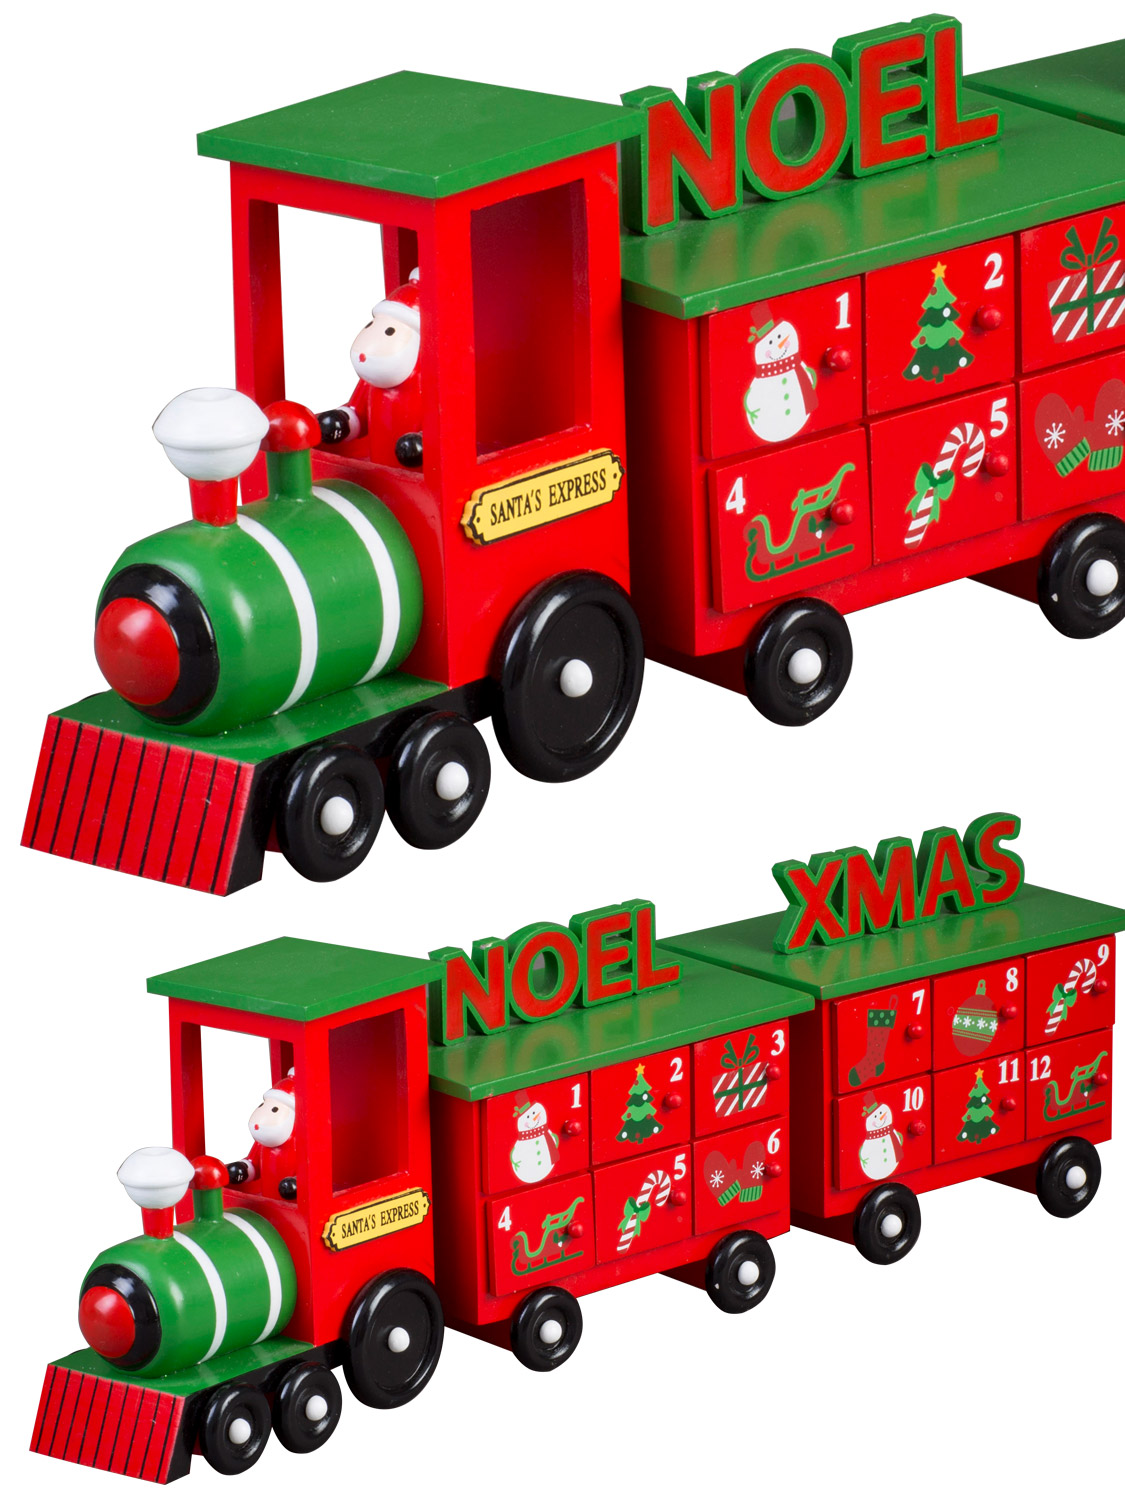 countdown to christmas in style with this cute xmas train advent calendar perfect for adults and children